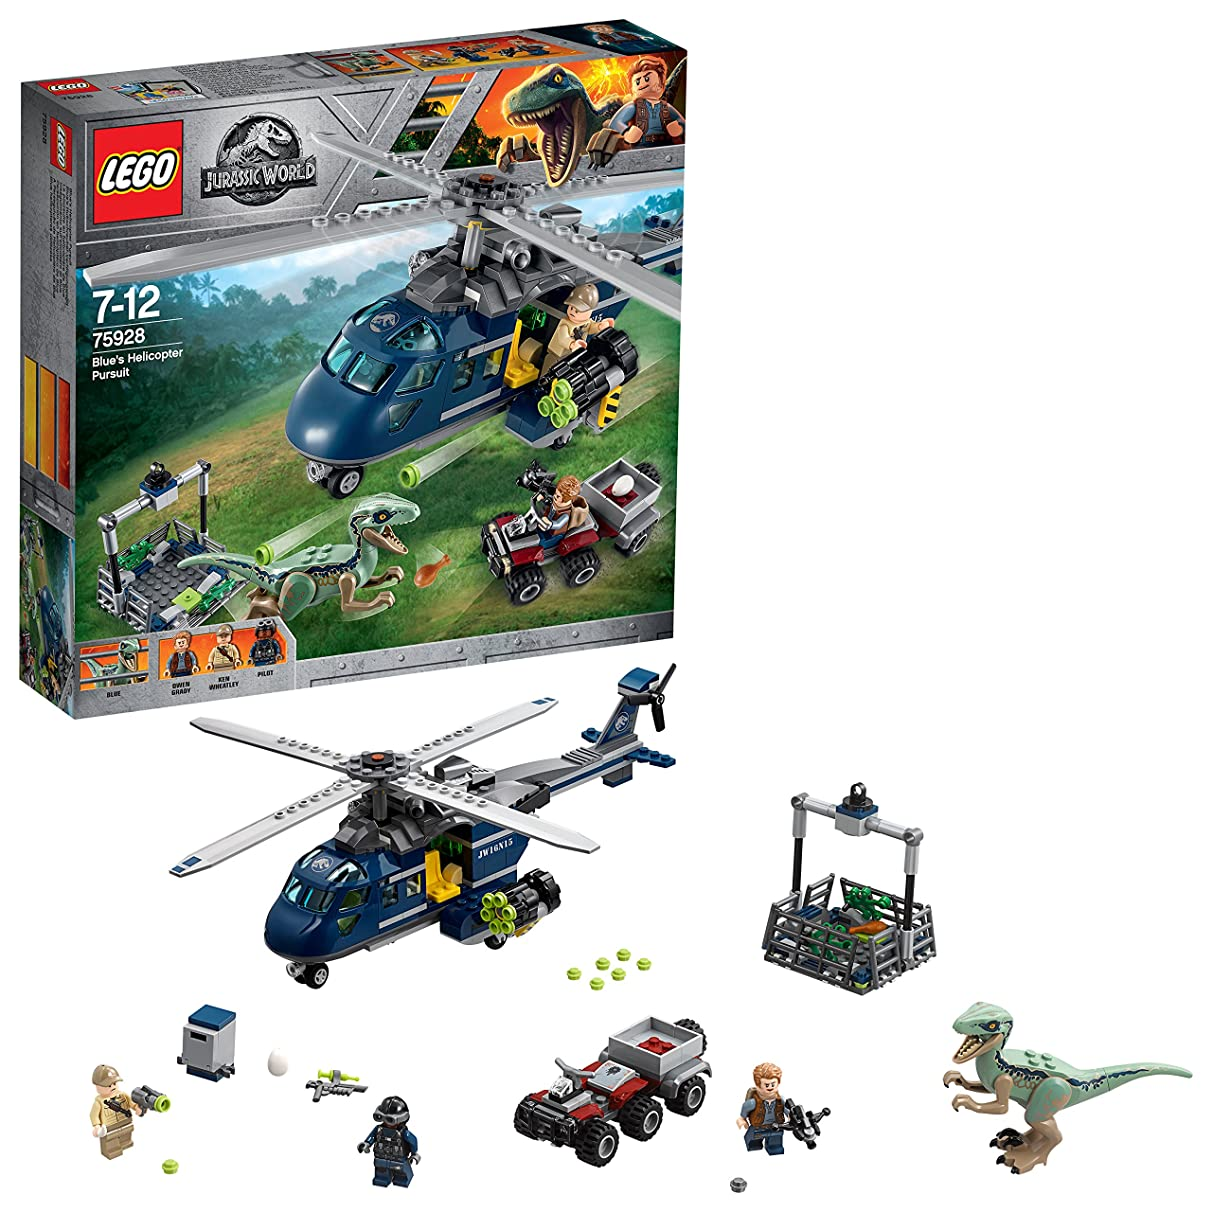 LEGO Jurassic World Blue's Helicopter Tracking Hunting 75928 Cool Toy